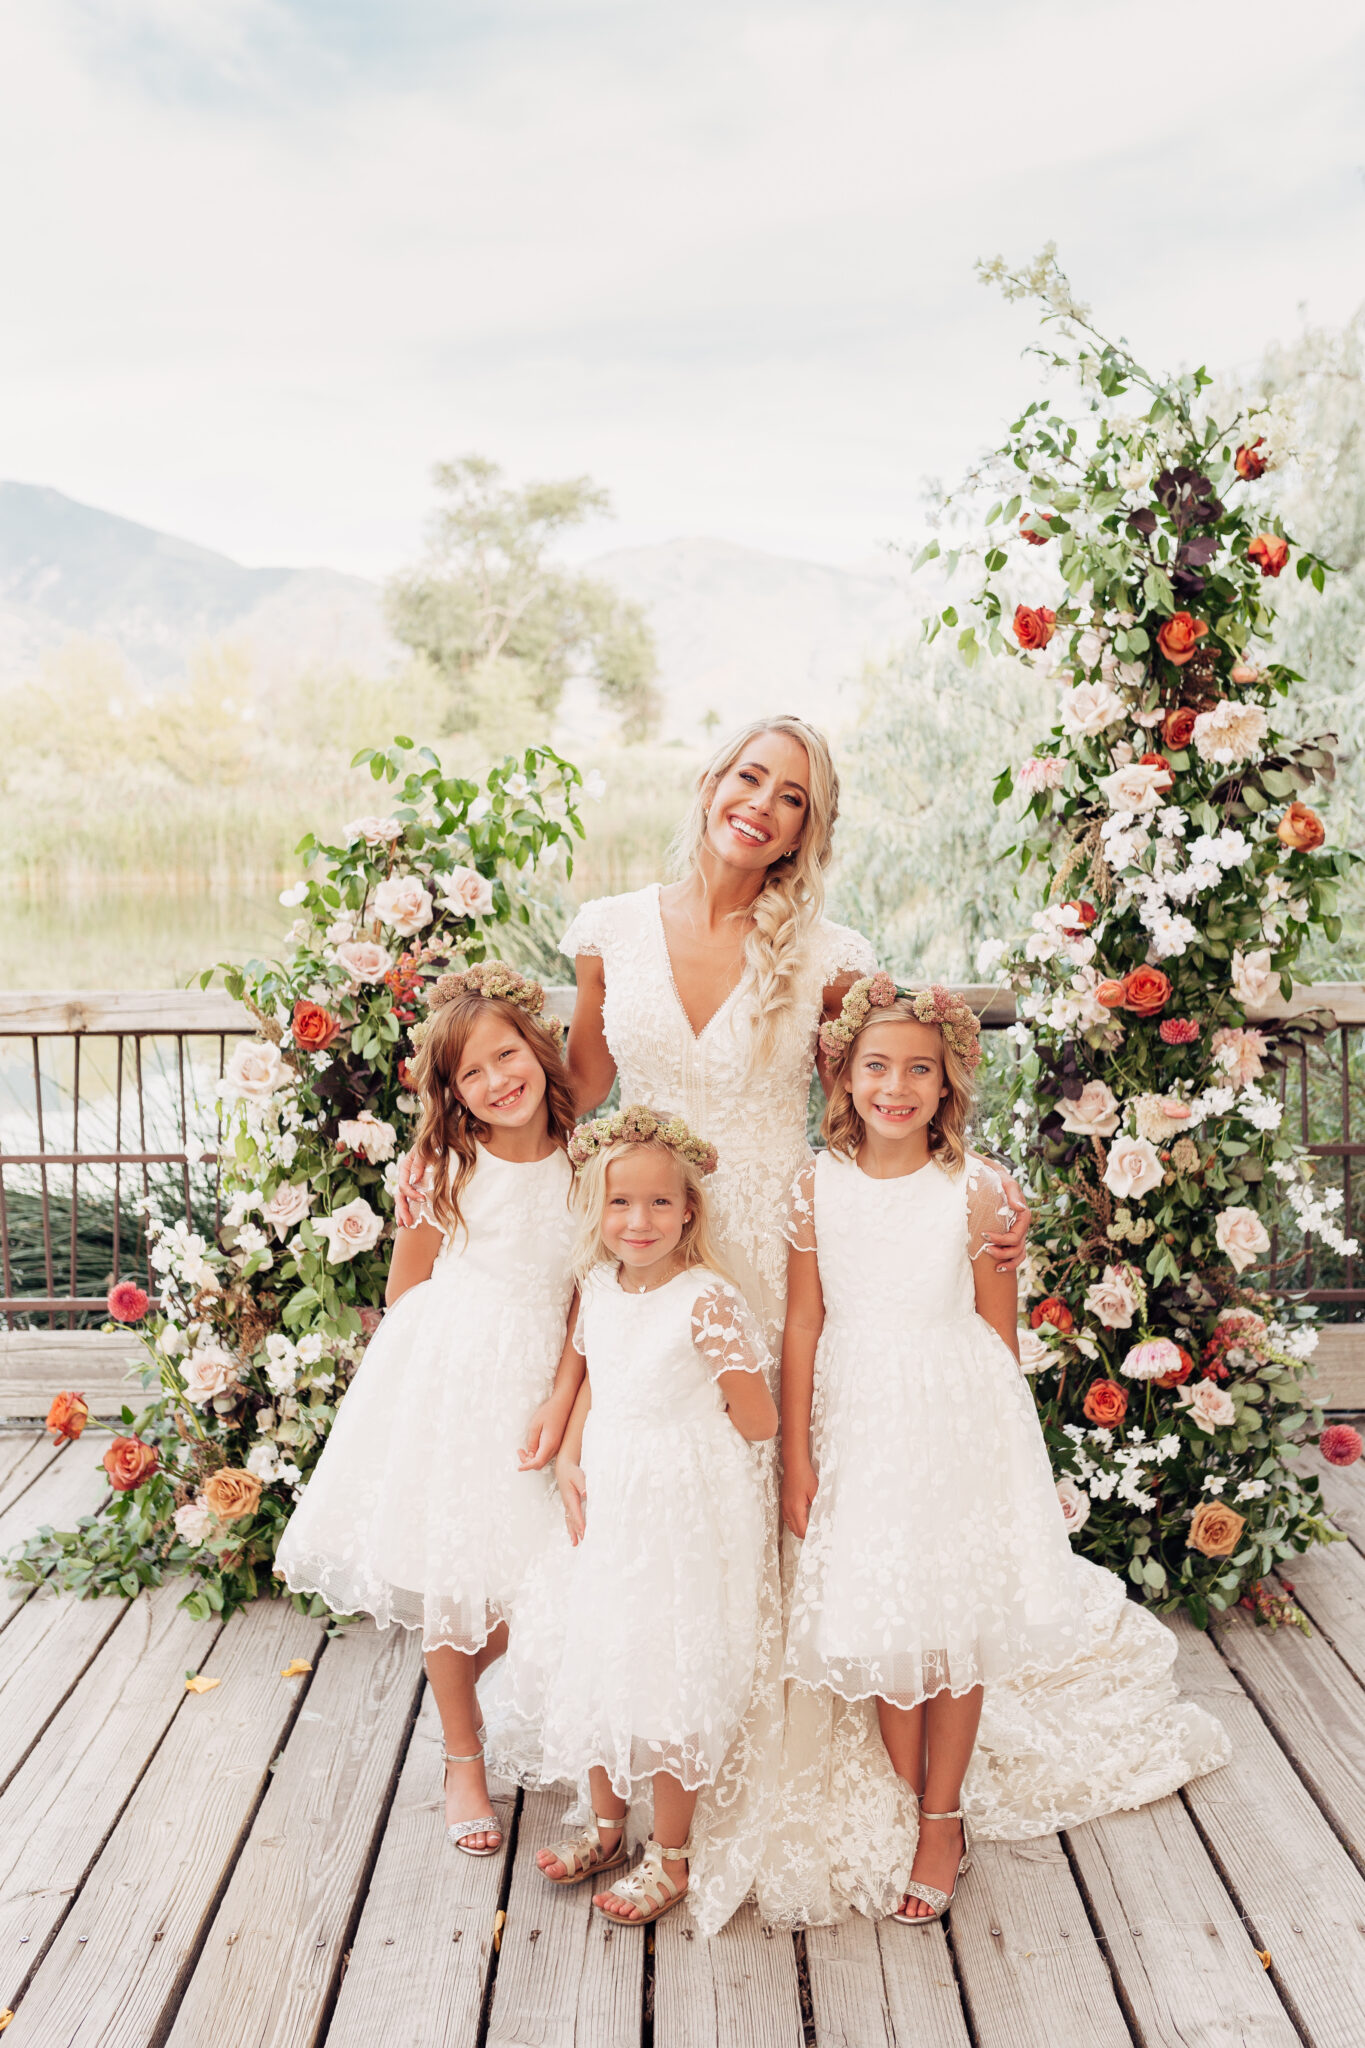 how to achieve a natural glow for your wedding day twistmepretty.com